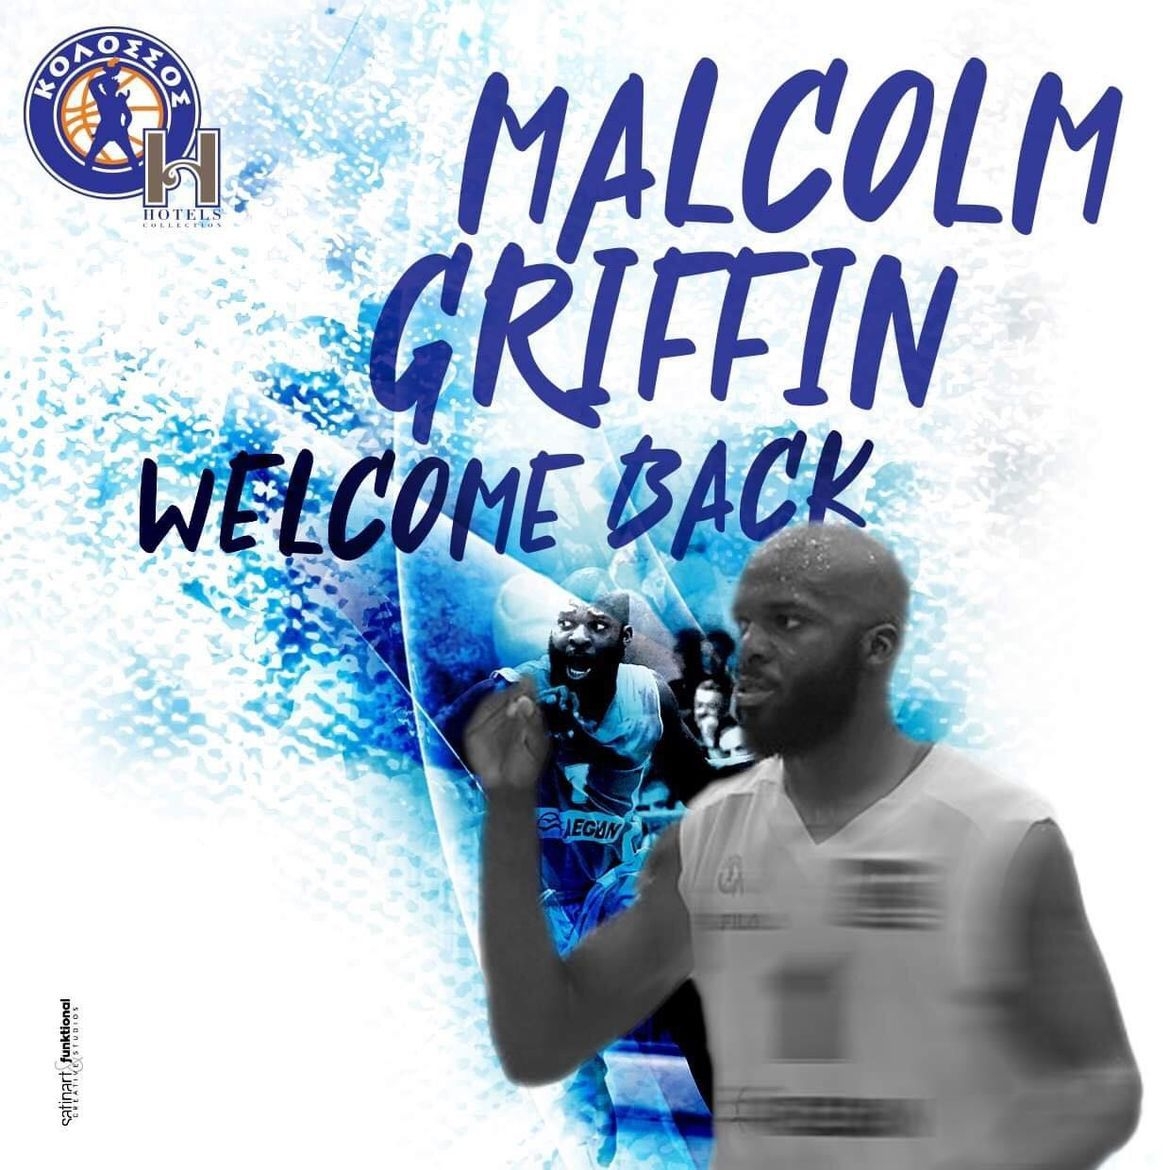 Malcolm Griffin